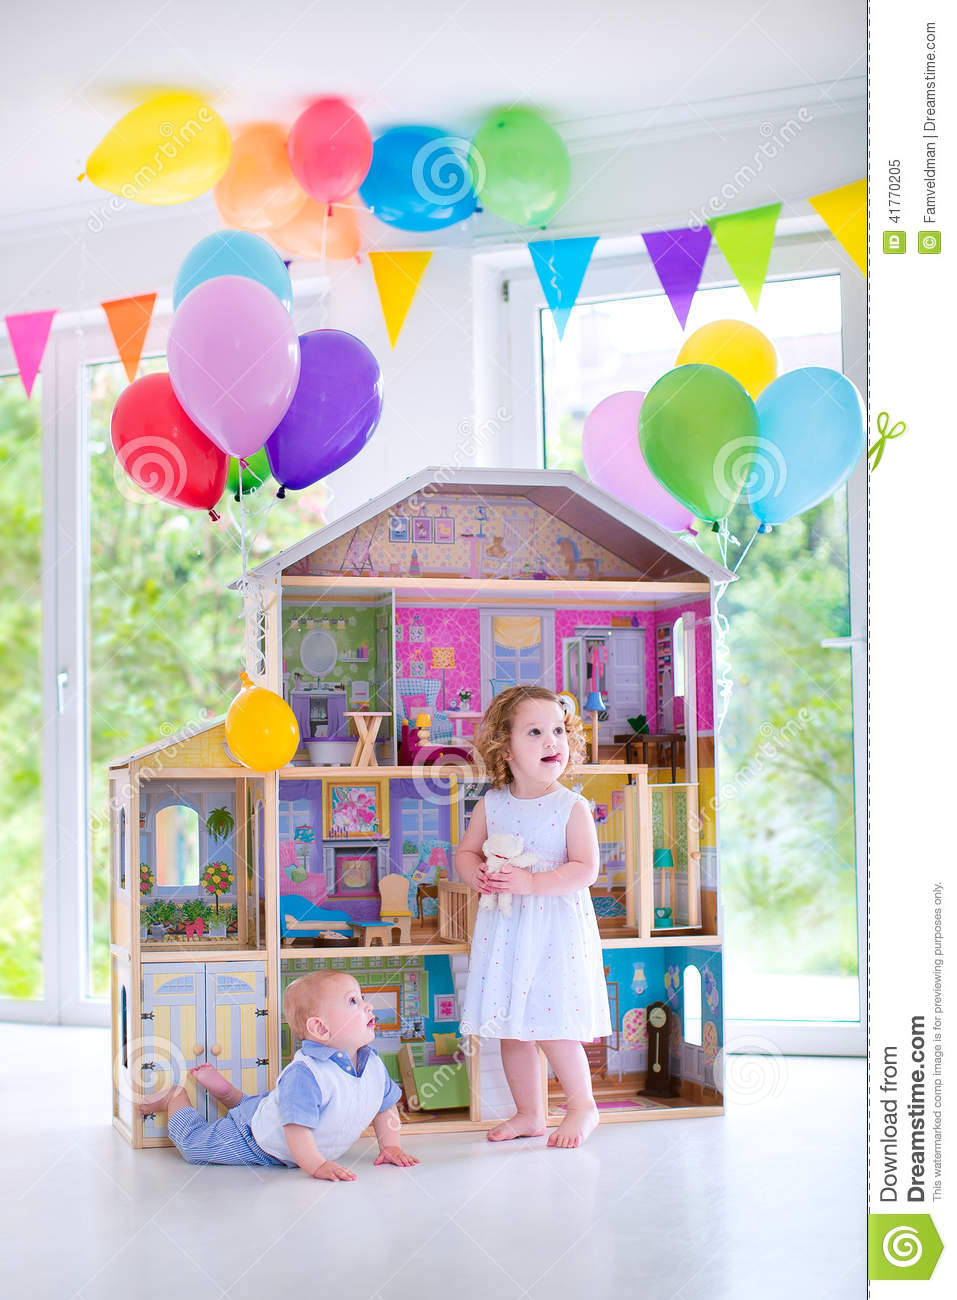 Adorable Curly Toddler Girl In A White Dress And Her Little Baby Brother Playing Together With Birthday Present